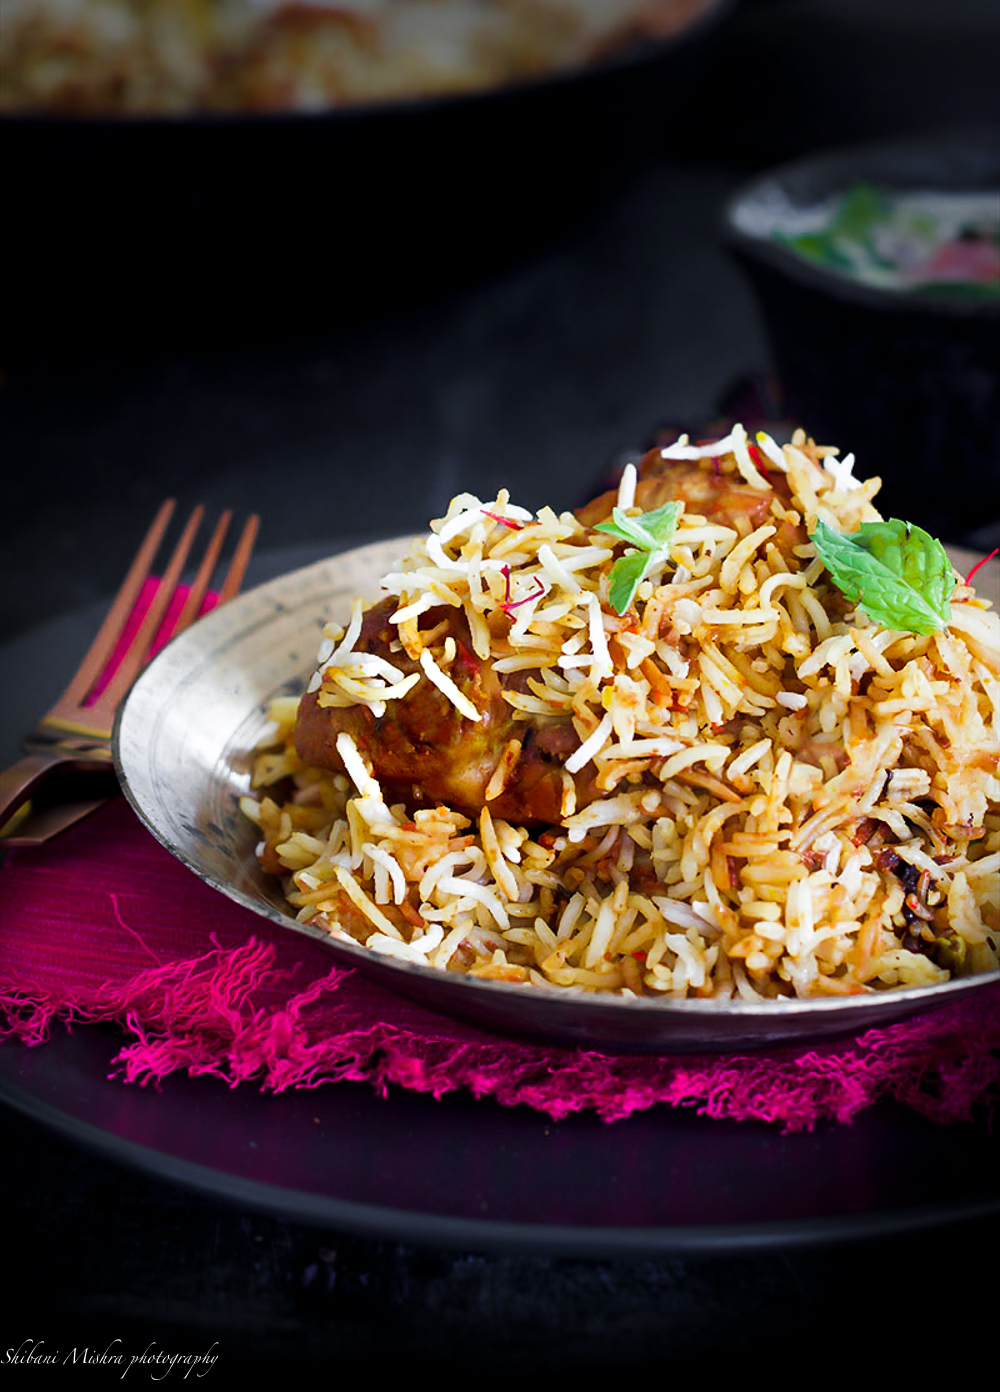 Honestly this chicken biryani, with its perfect balance of flavours, is one of my absolute favourite. This is a keepsake recipe.